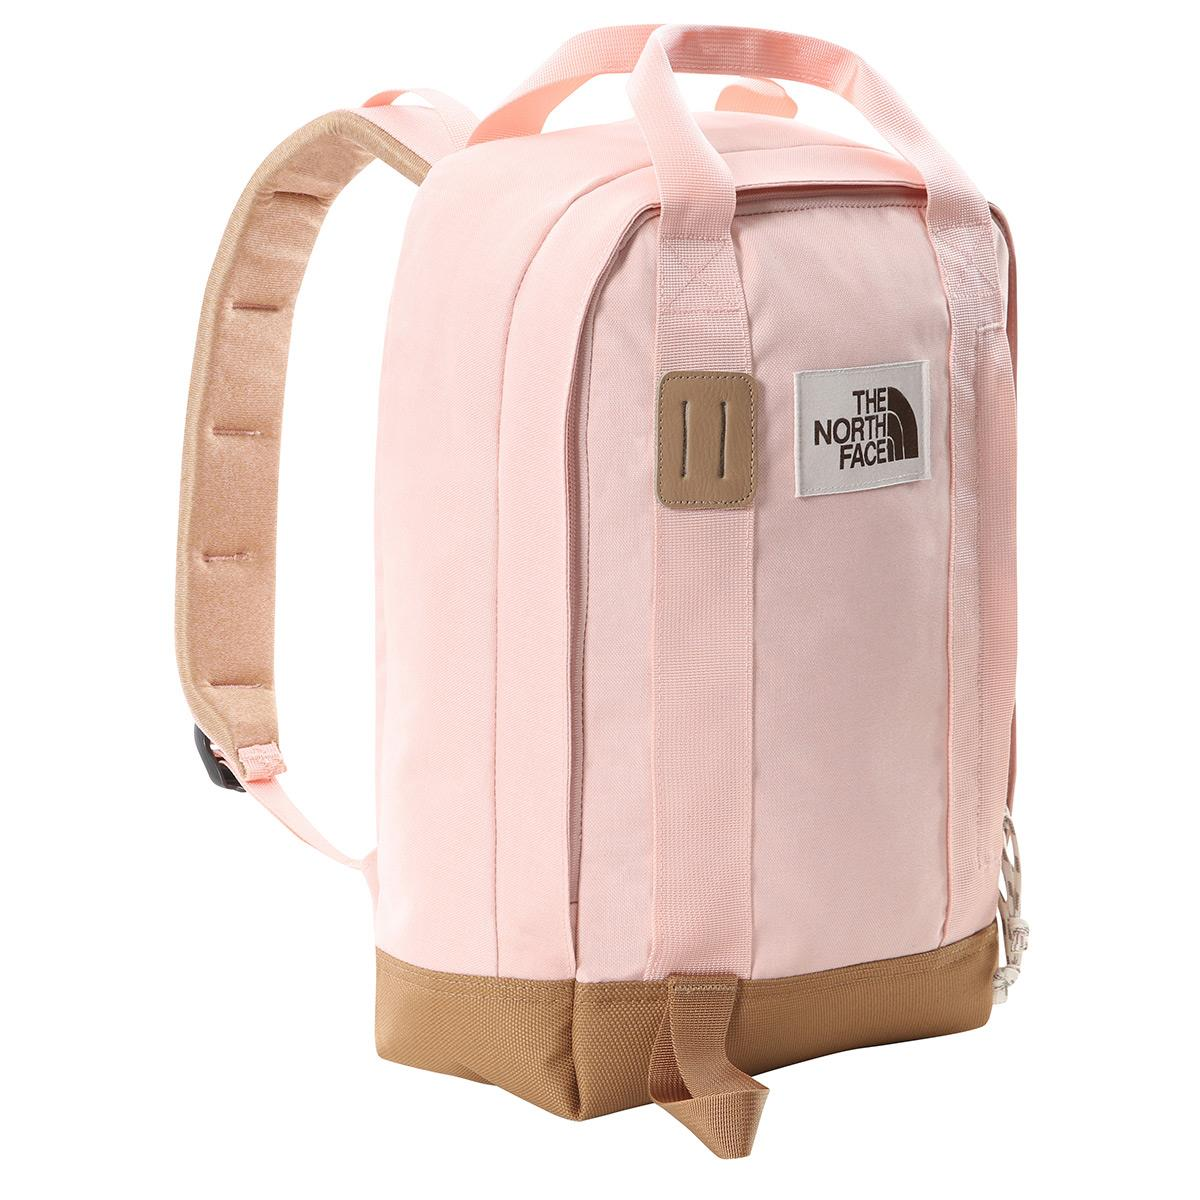 The North Face  TOTE PACK Çanta Unisex